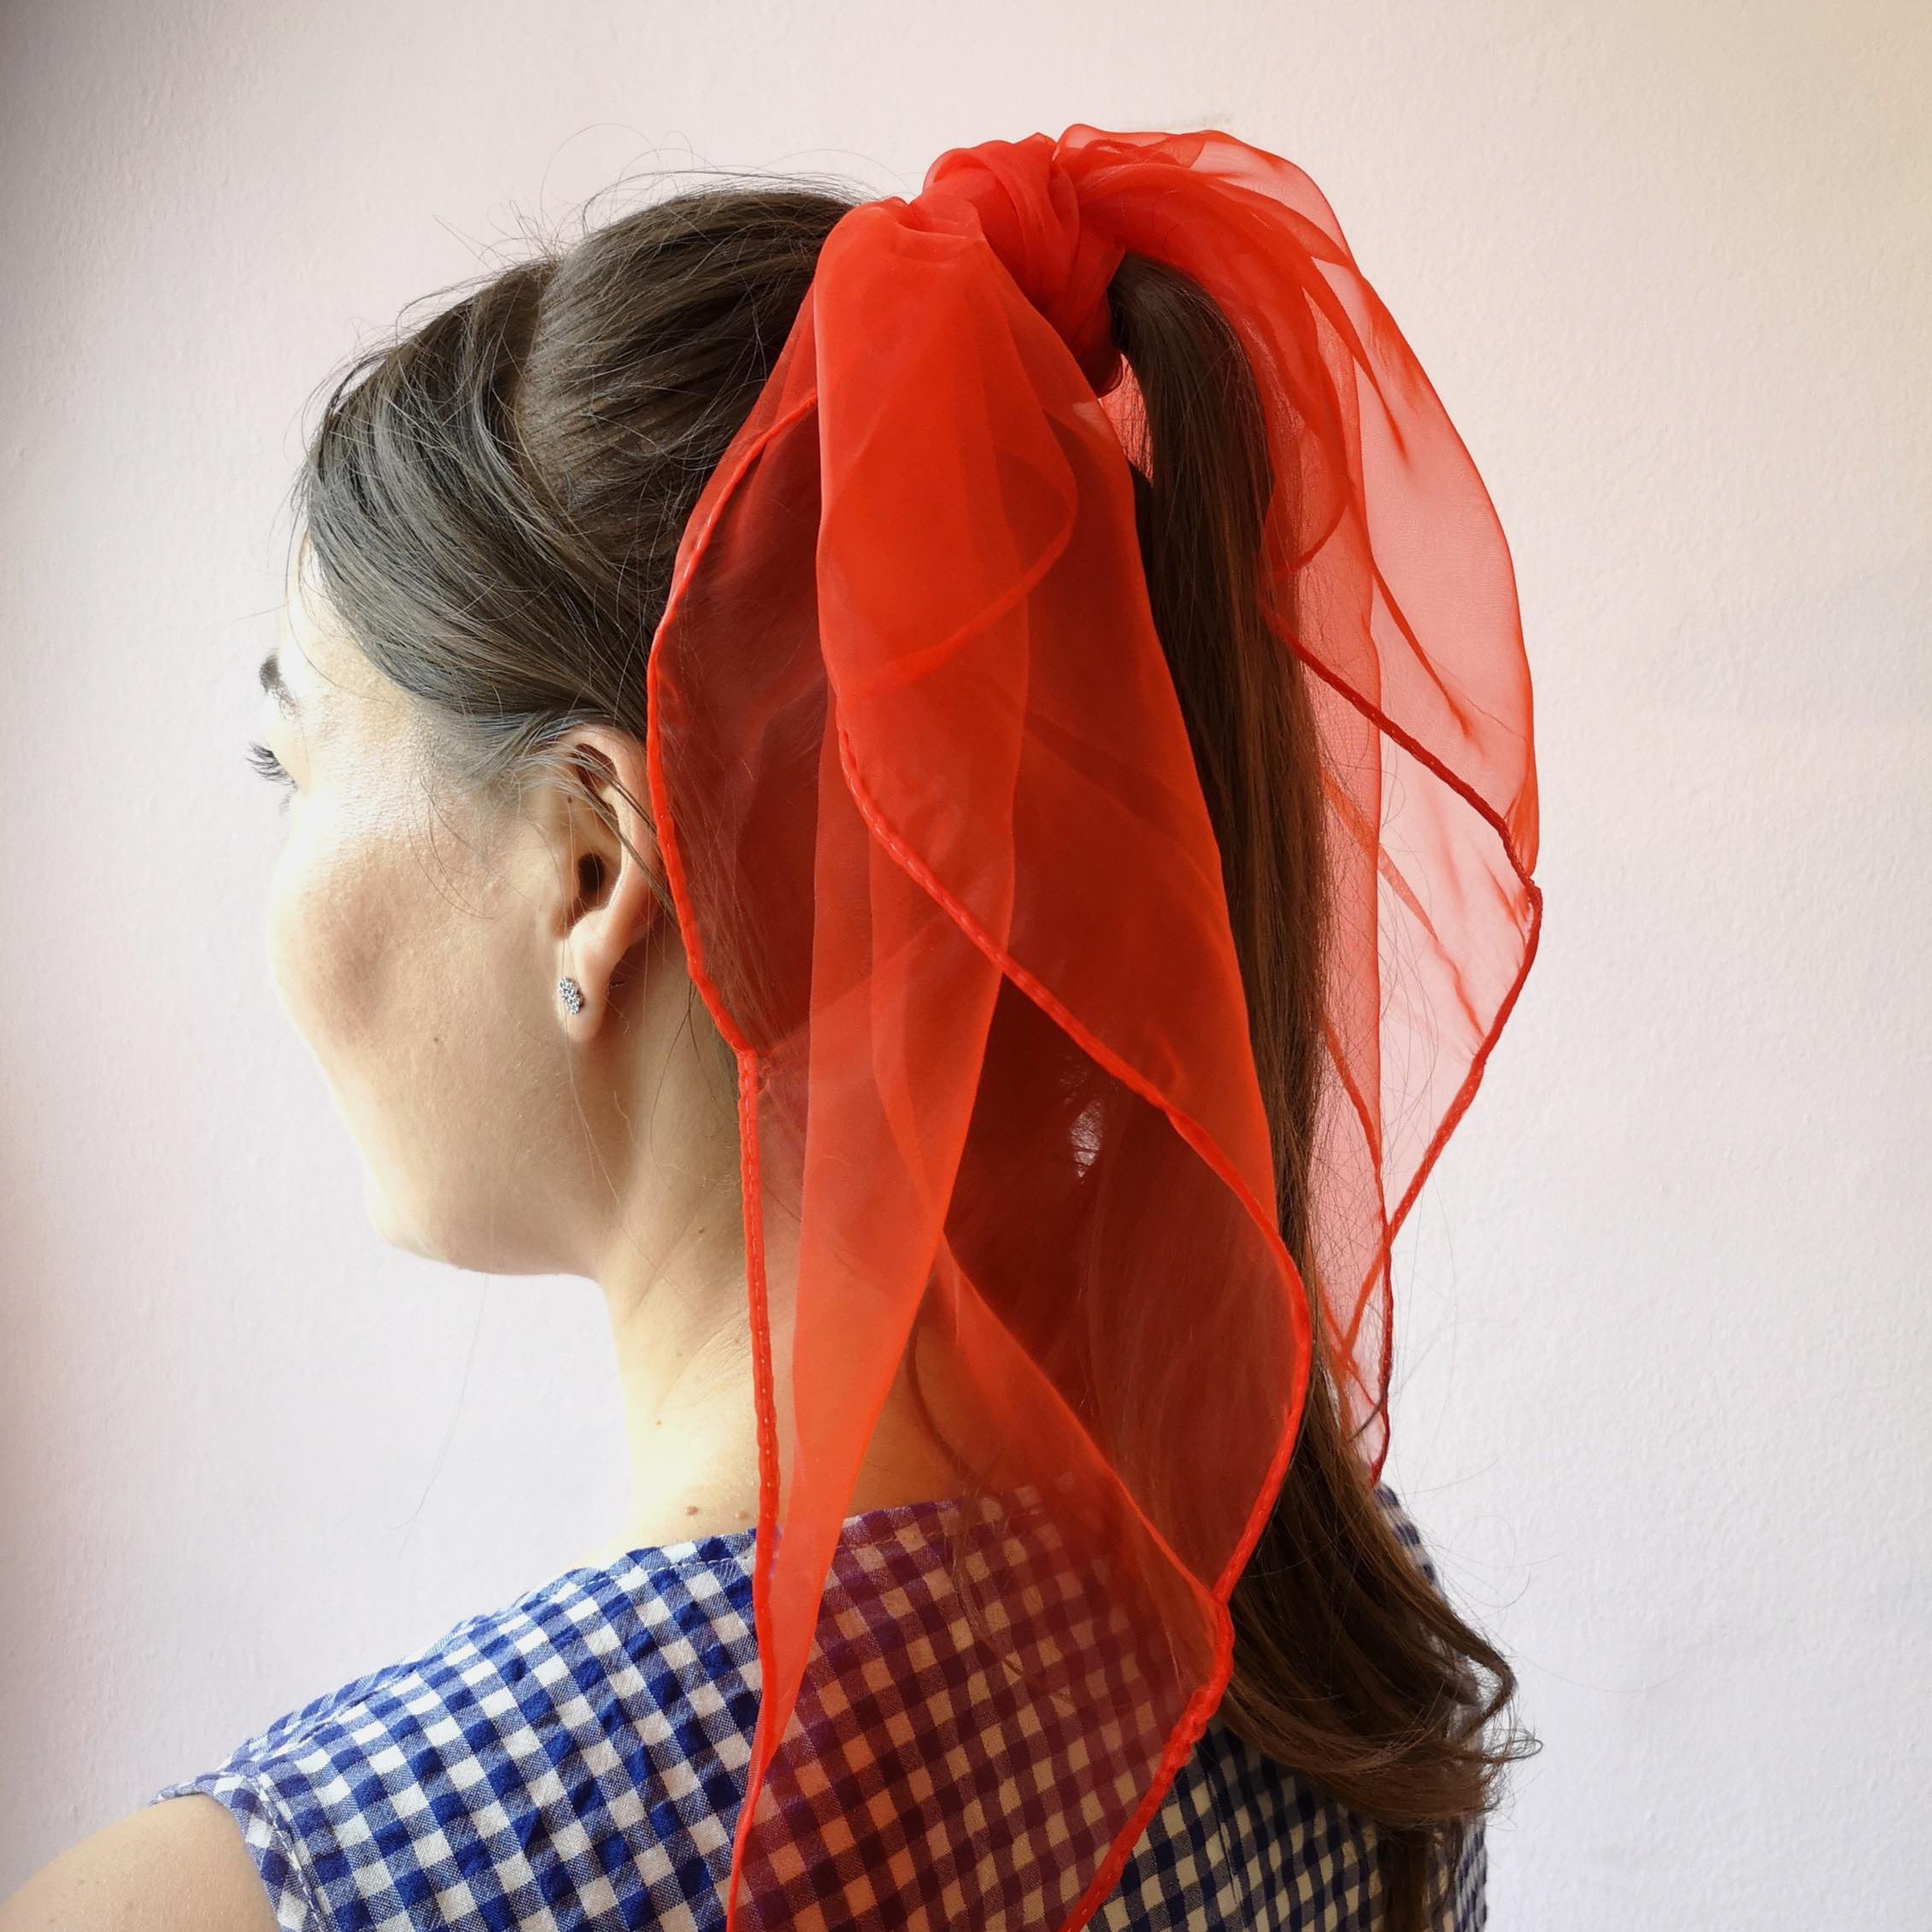 1950s pinup hairstyle with high ponytail made with chiffon scarf